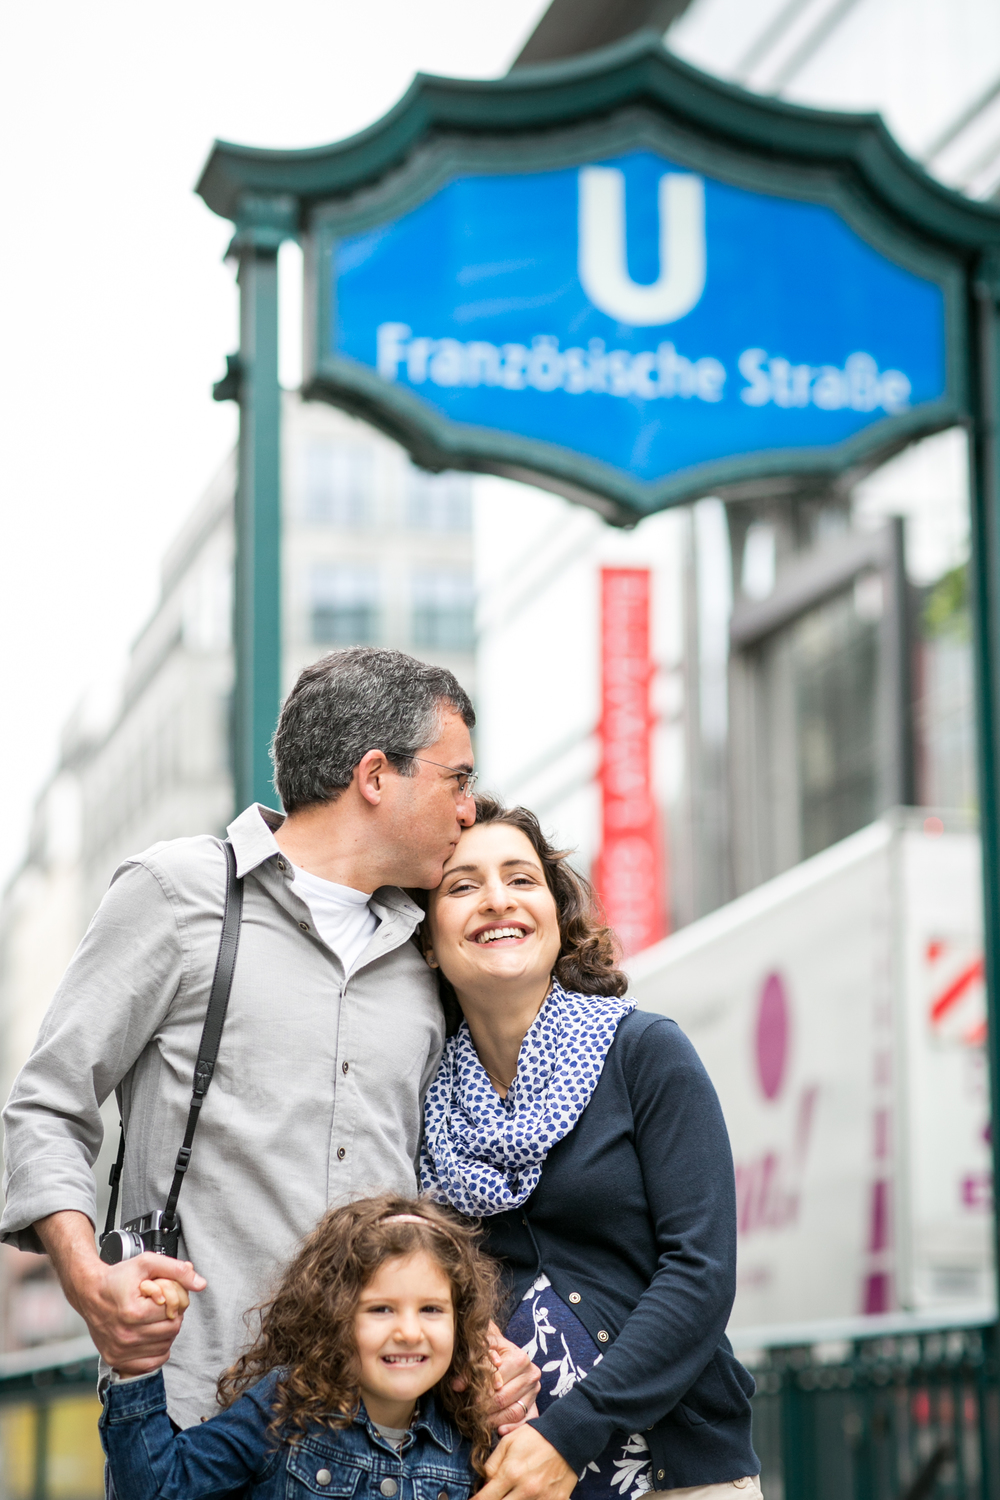 FLYTOGRAPHER | Berlin Vacation Photographer - 8